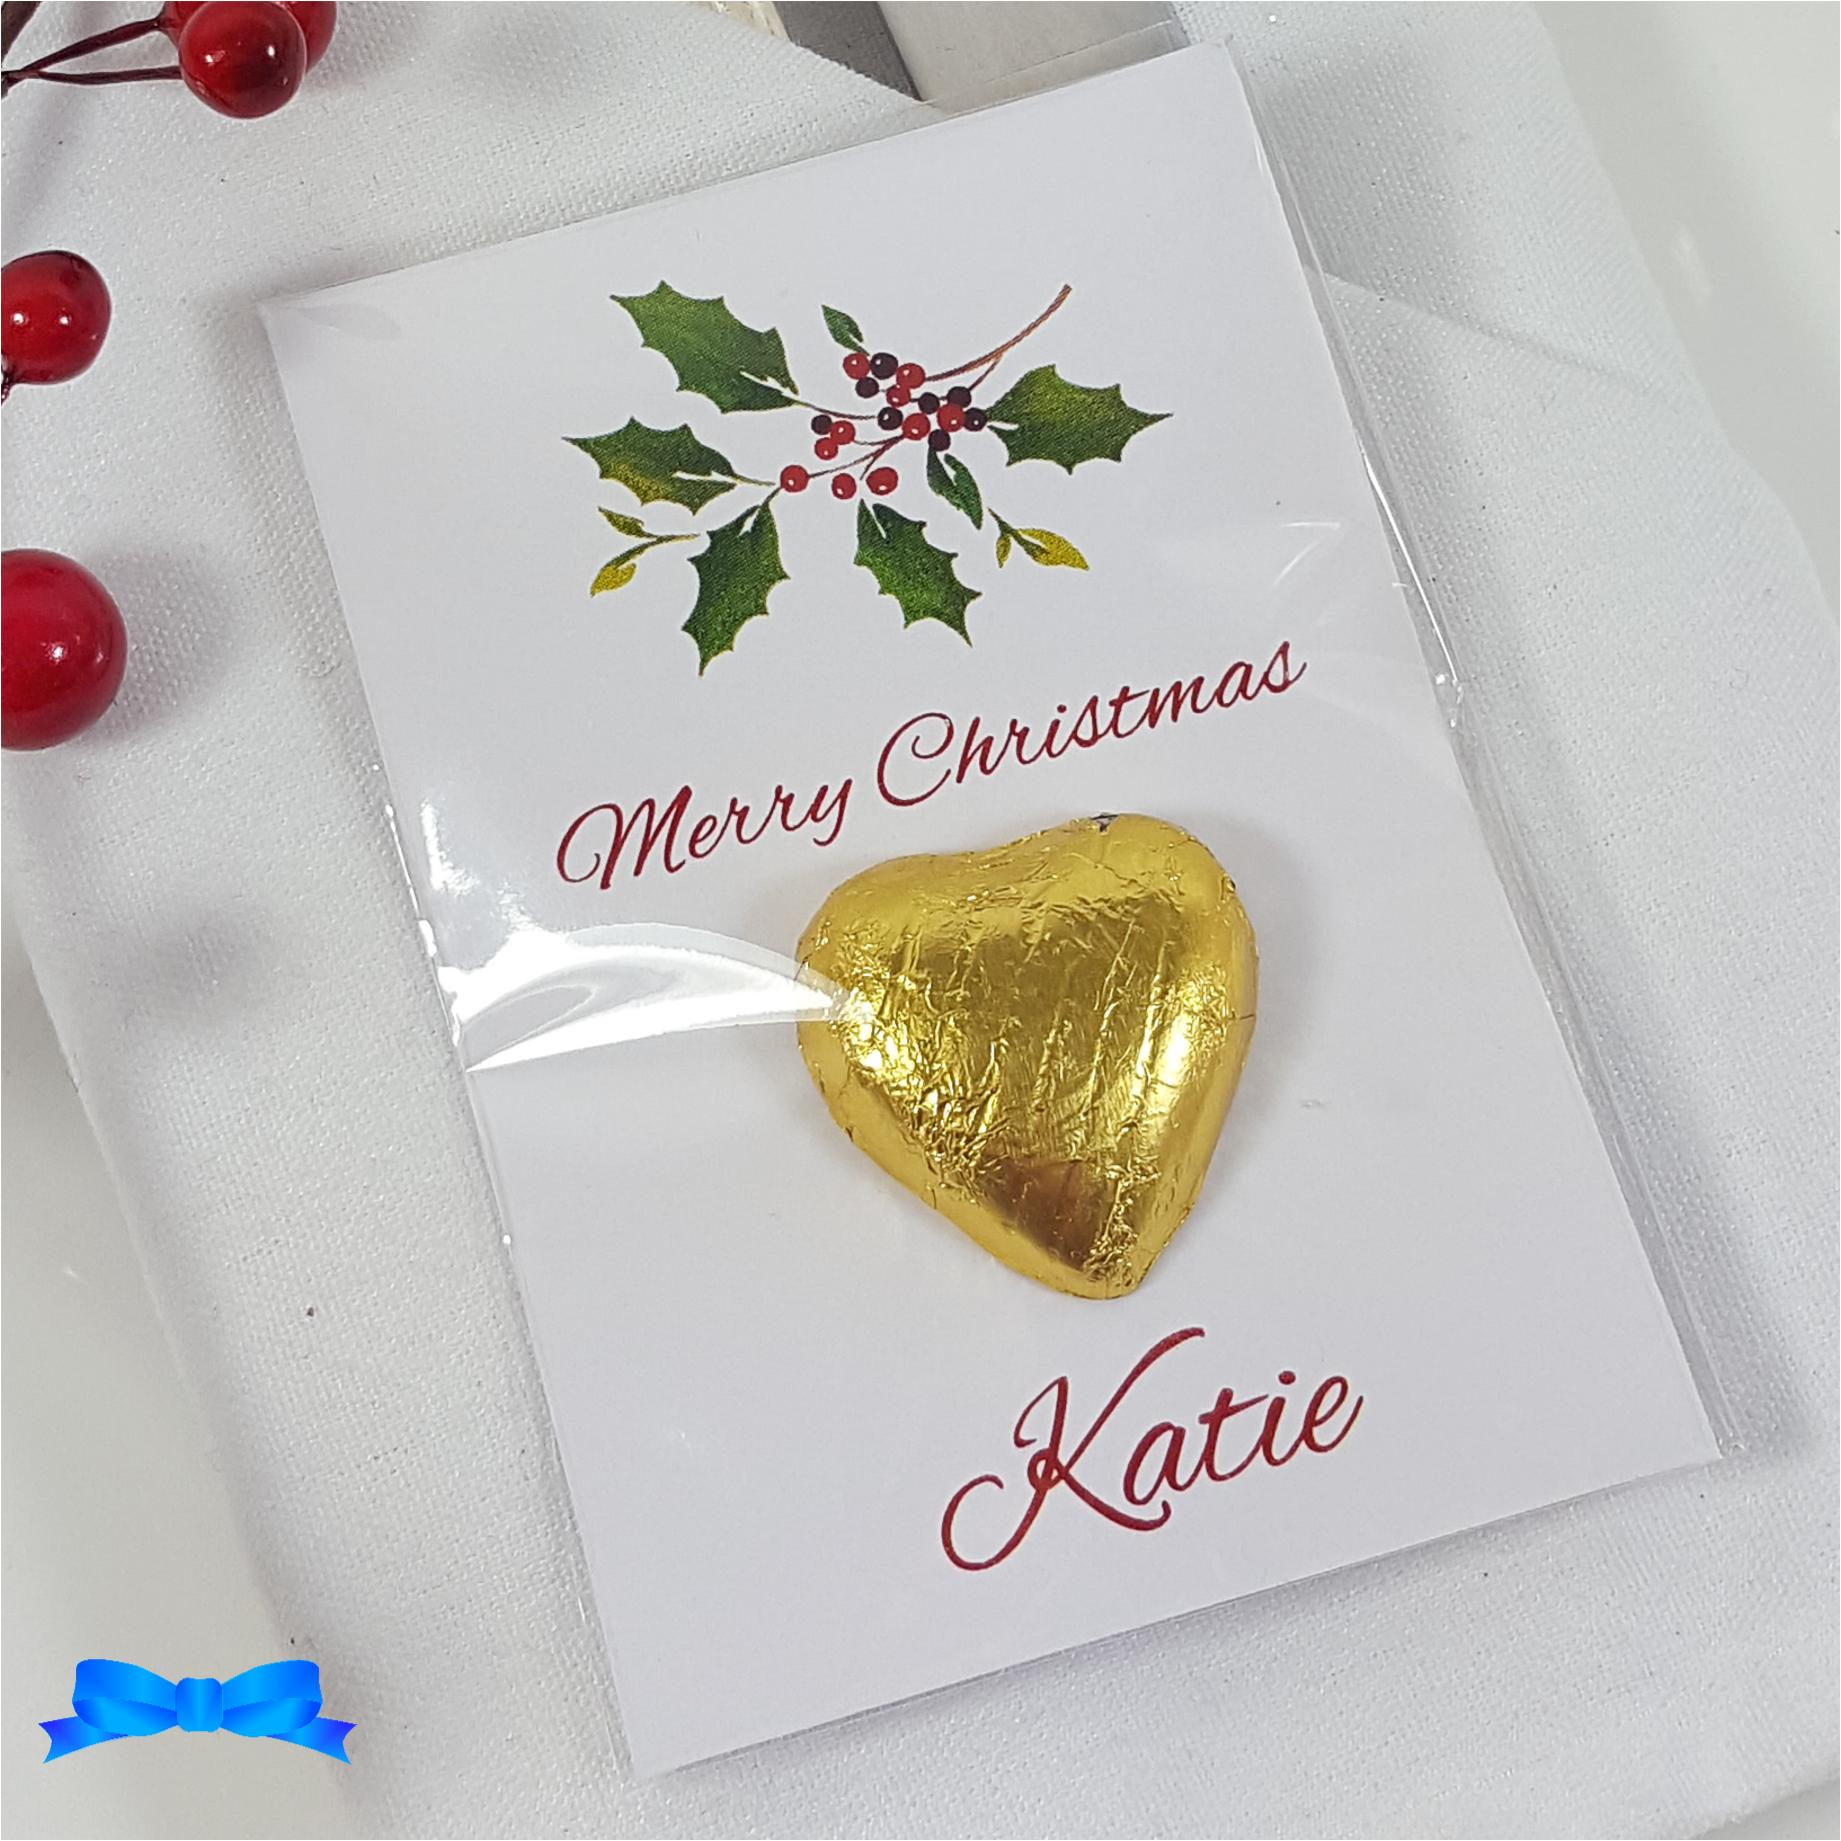 Christmas table favour with holly and gold chocolate heart